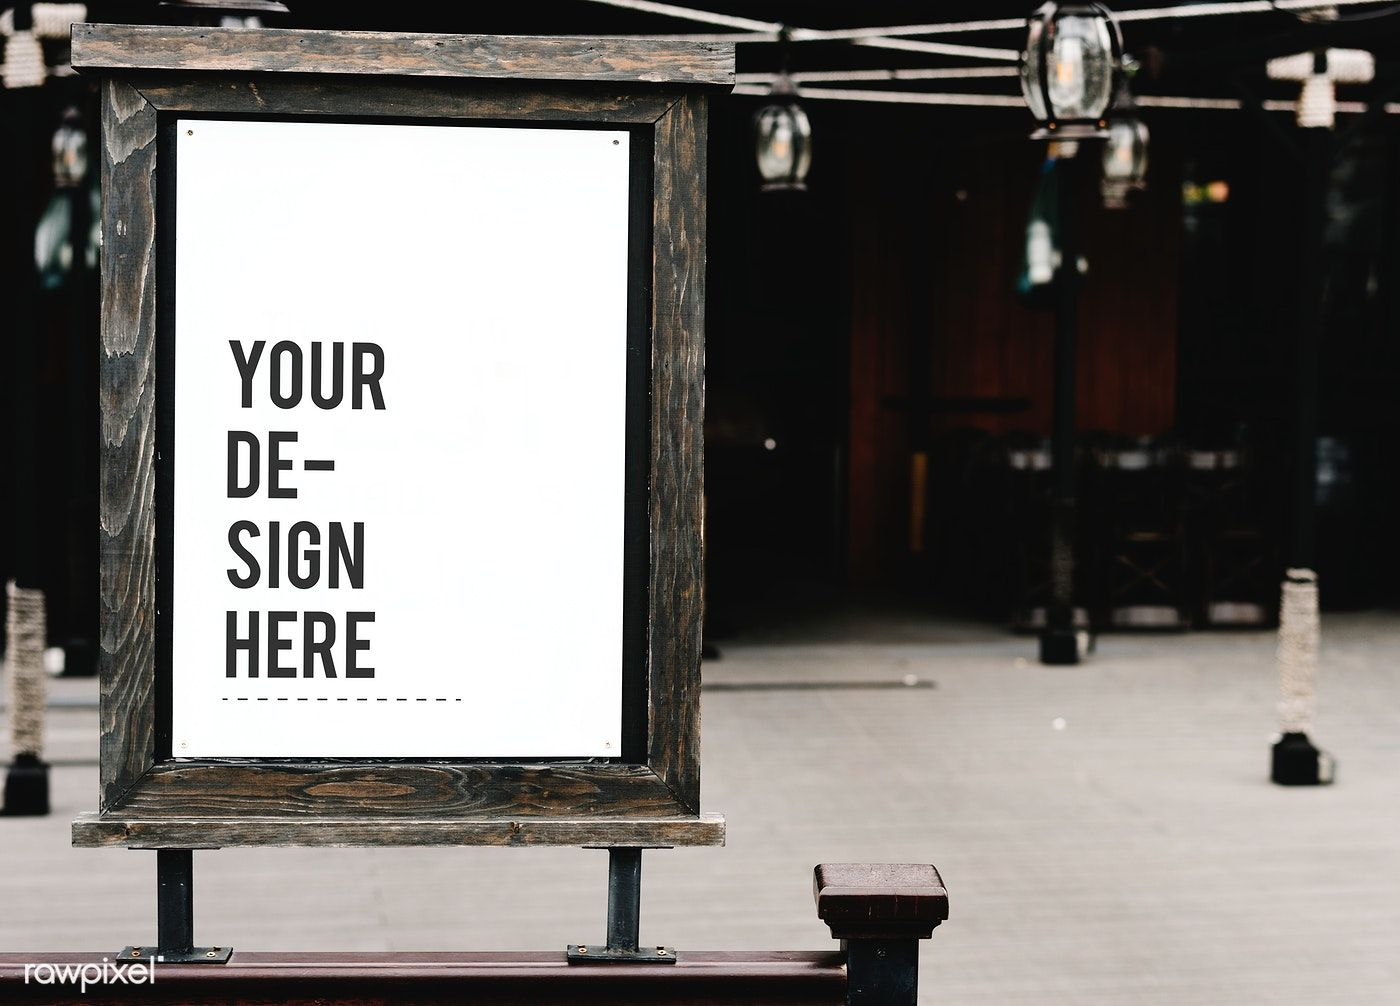 Rustic Wooden Signboard Mockup At A Restaurant Free Image By Rawpixel Com Jira Design Mockup Free Signboard Business Card Mock Up